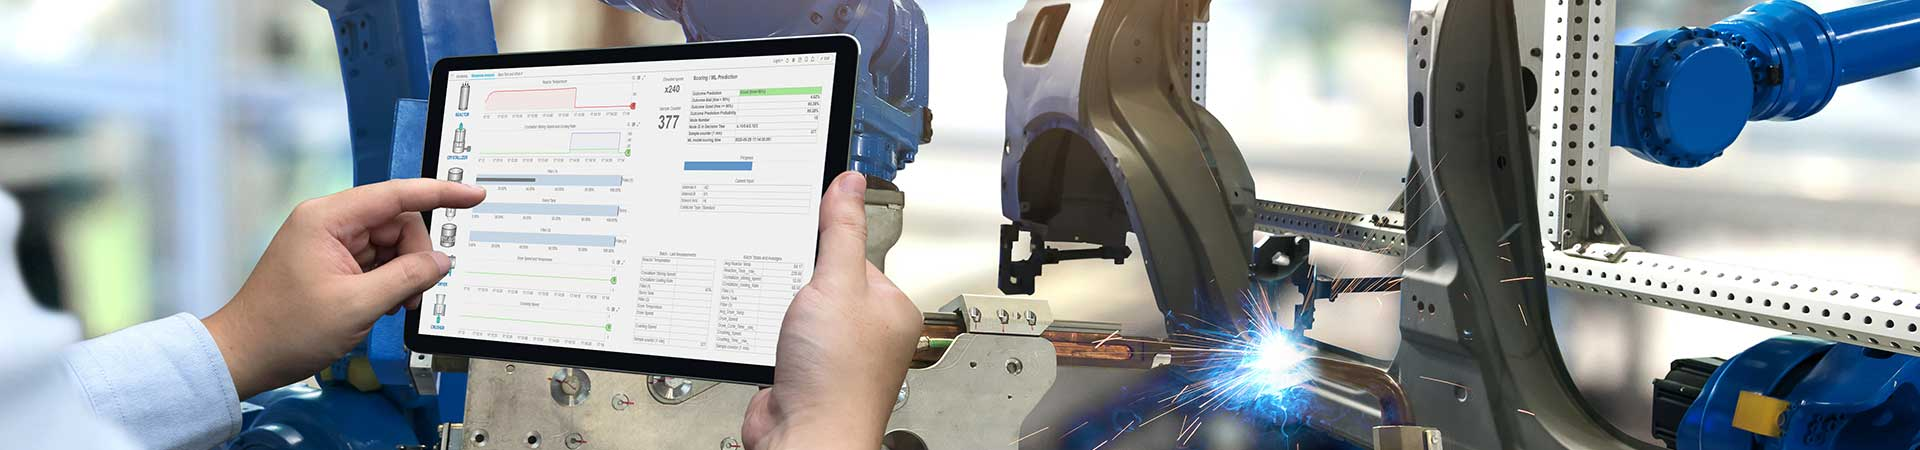 Lifecycle Smart Manufacturing eBook